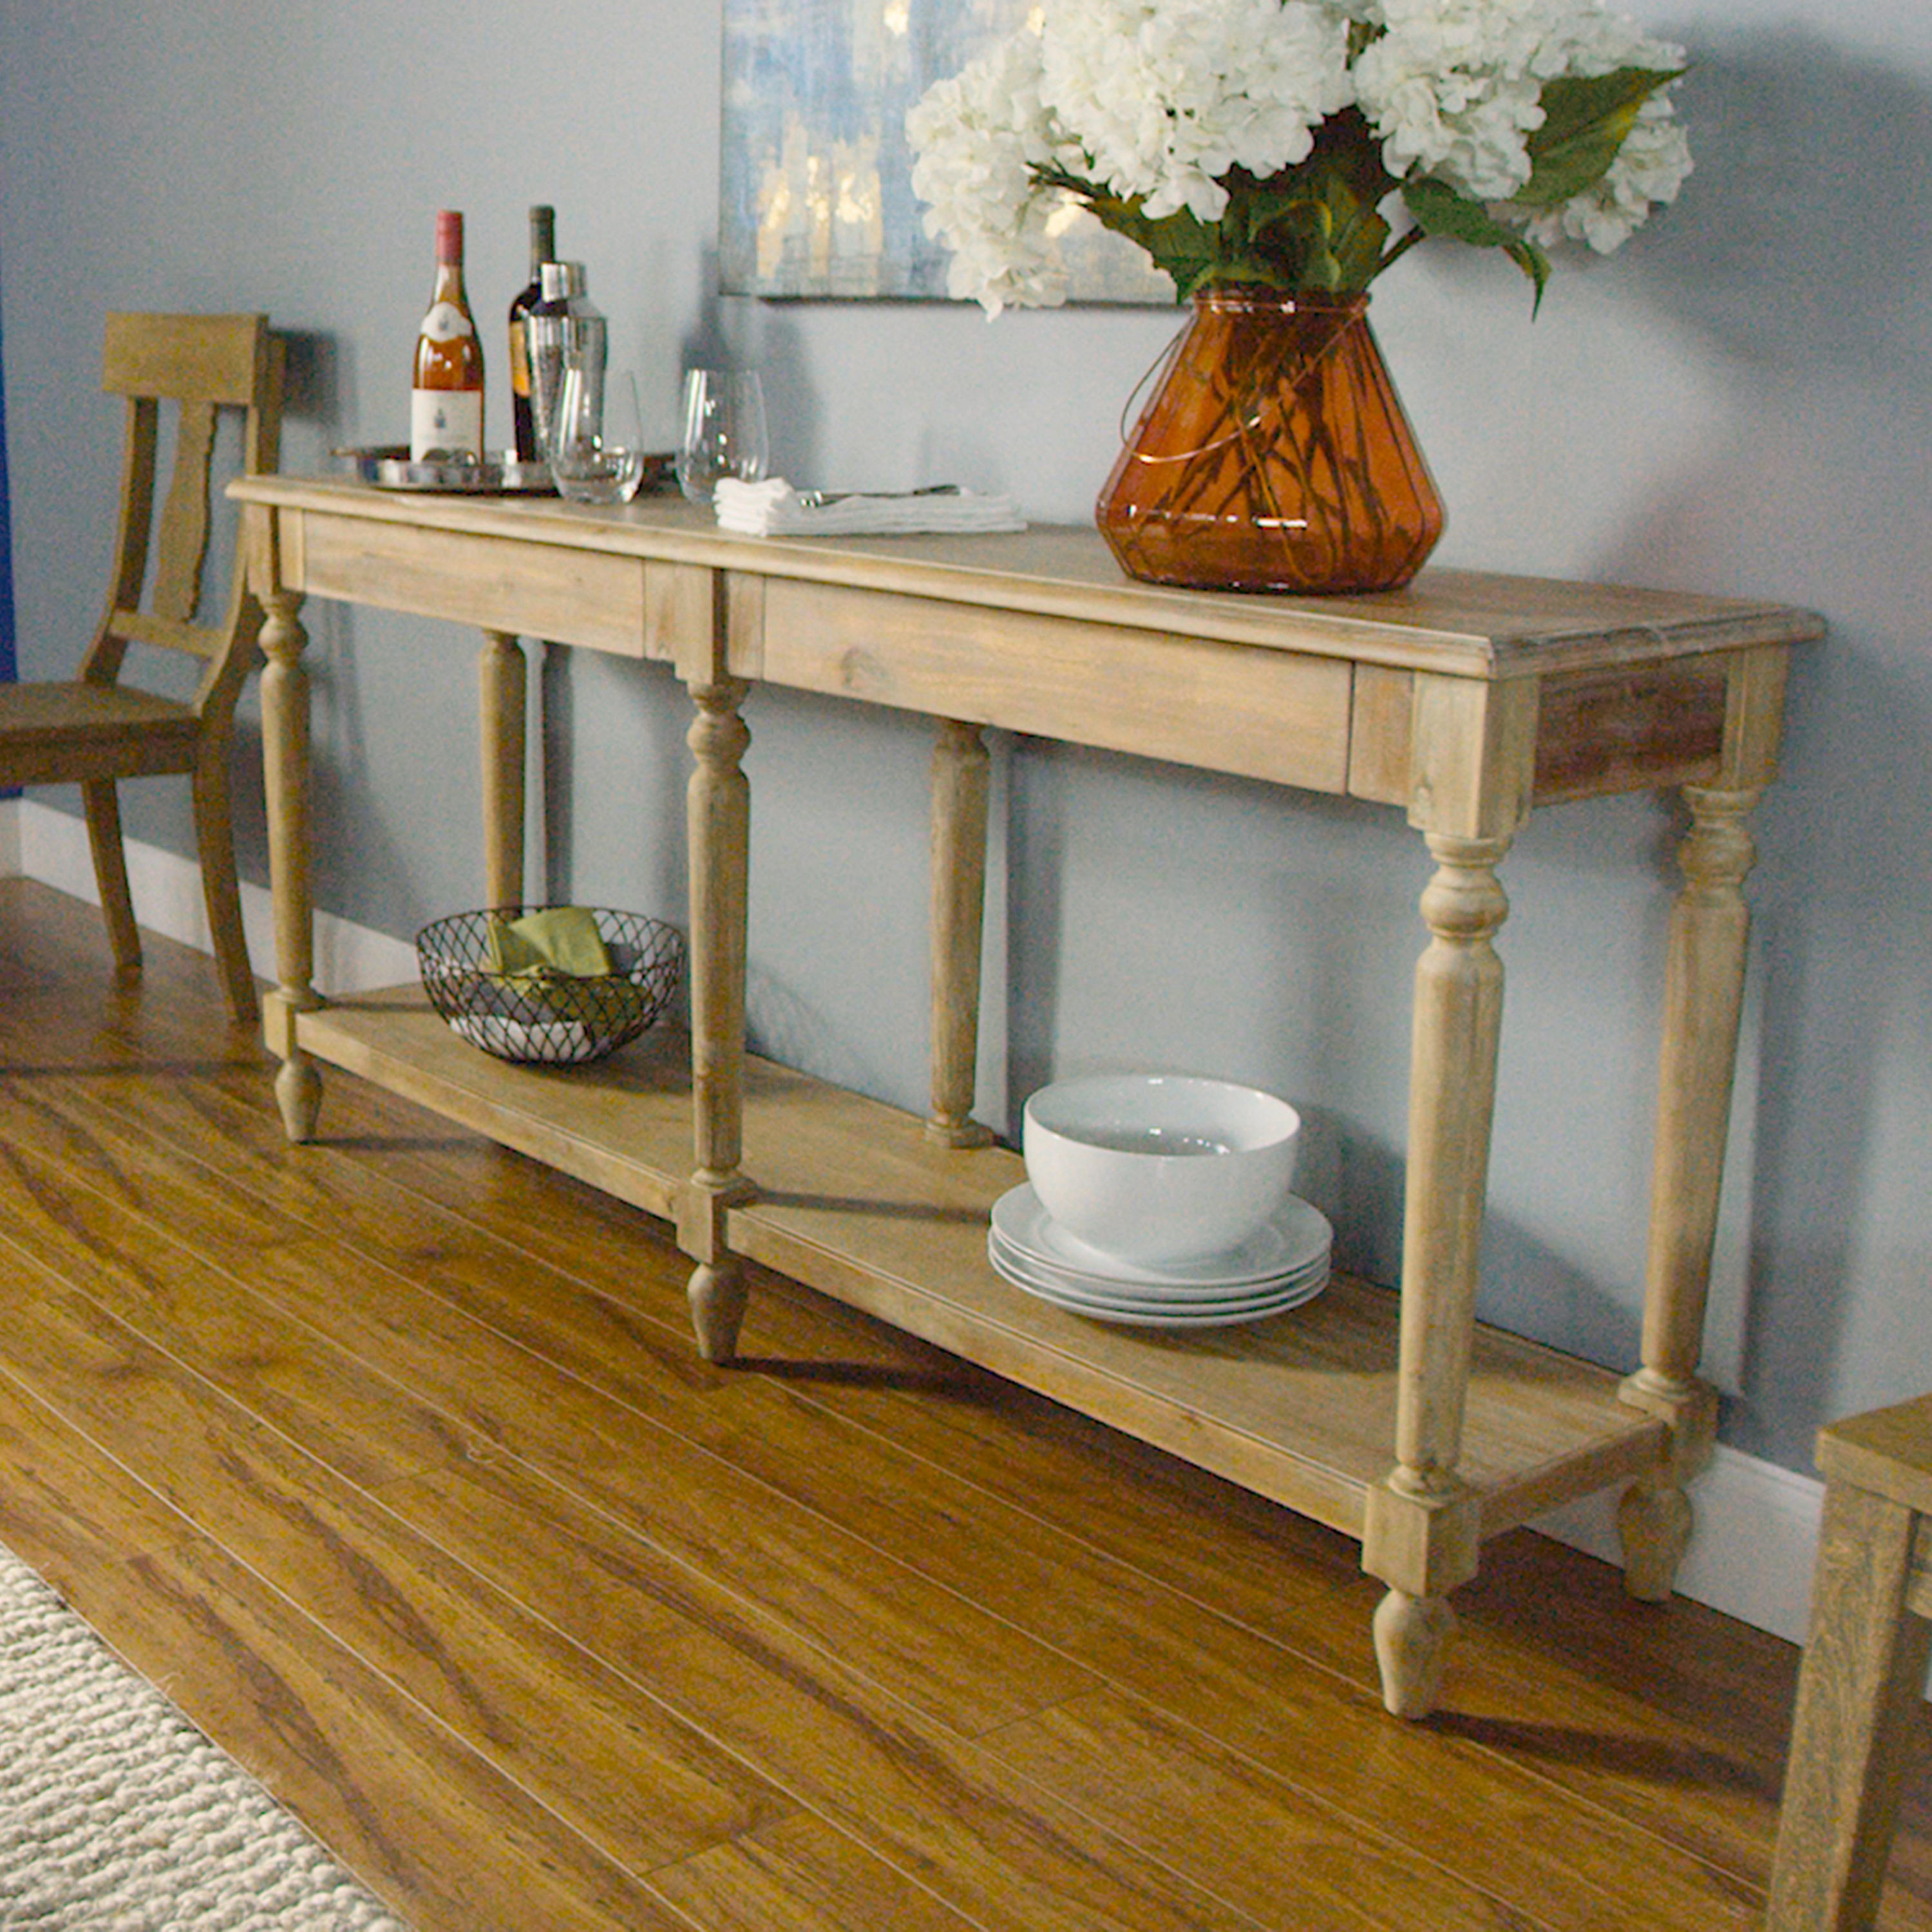 furniture alluring everett foyer table for home idea consoles tables foyers wrought iron sofa vintage entryway pottery barn tivoli console ikea accent black drum coffee west elm